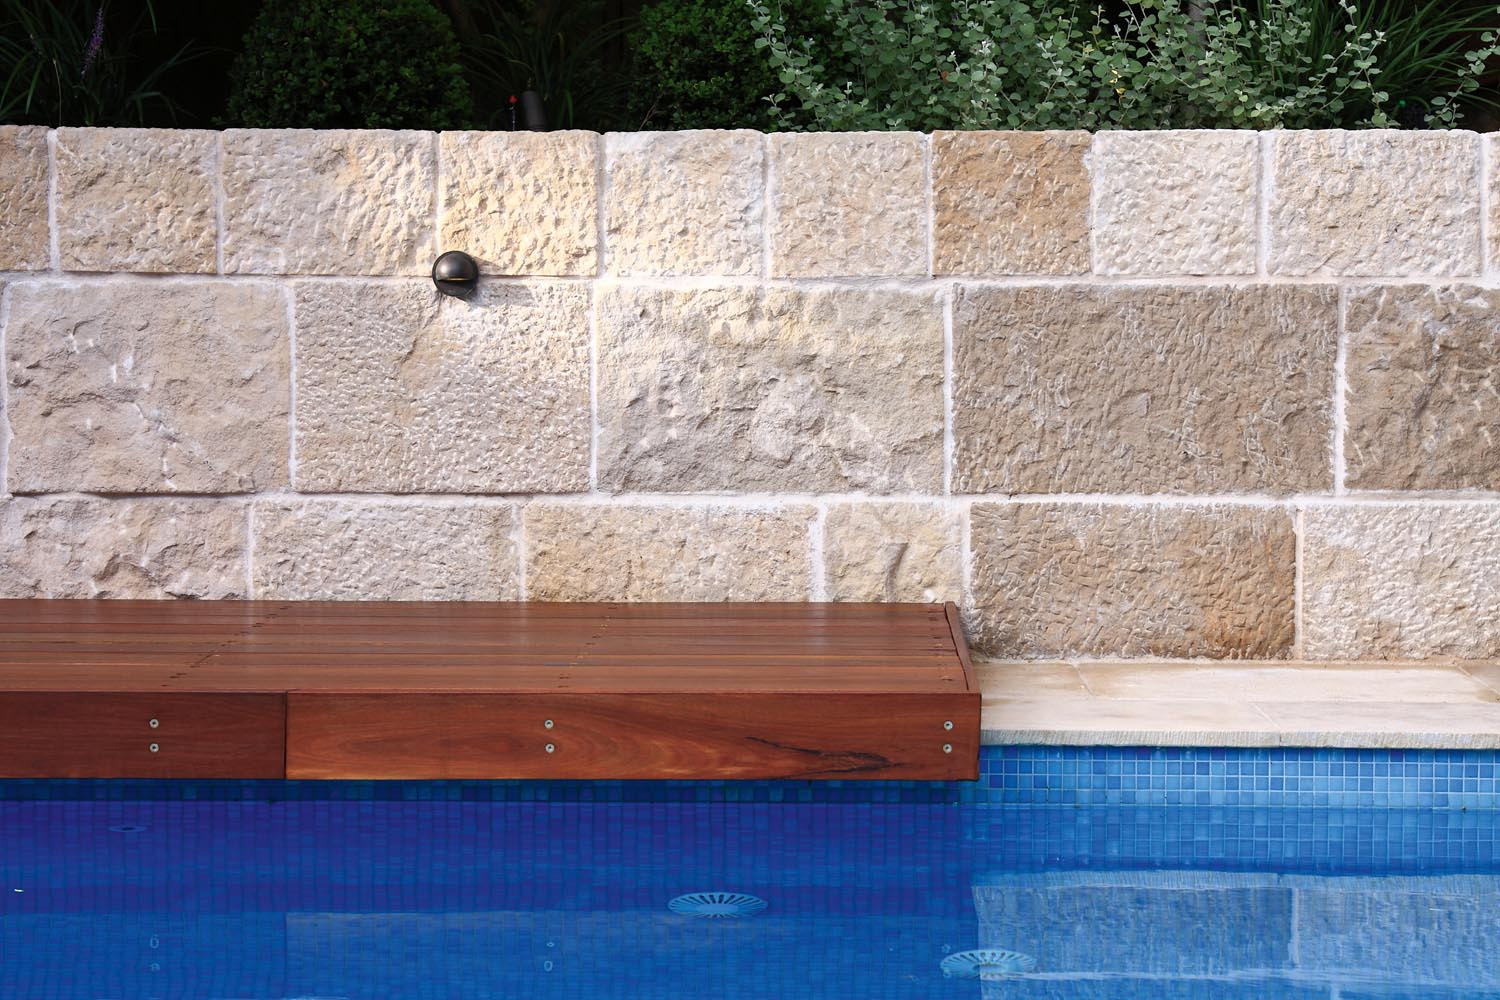 Modern pool closeup with a wooden bench